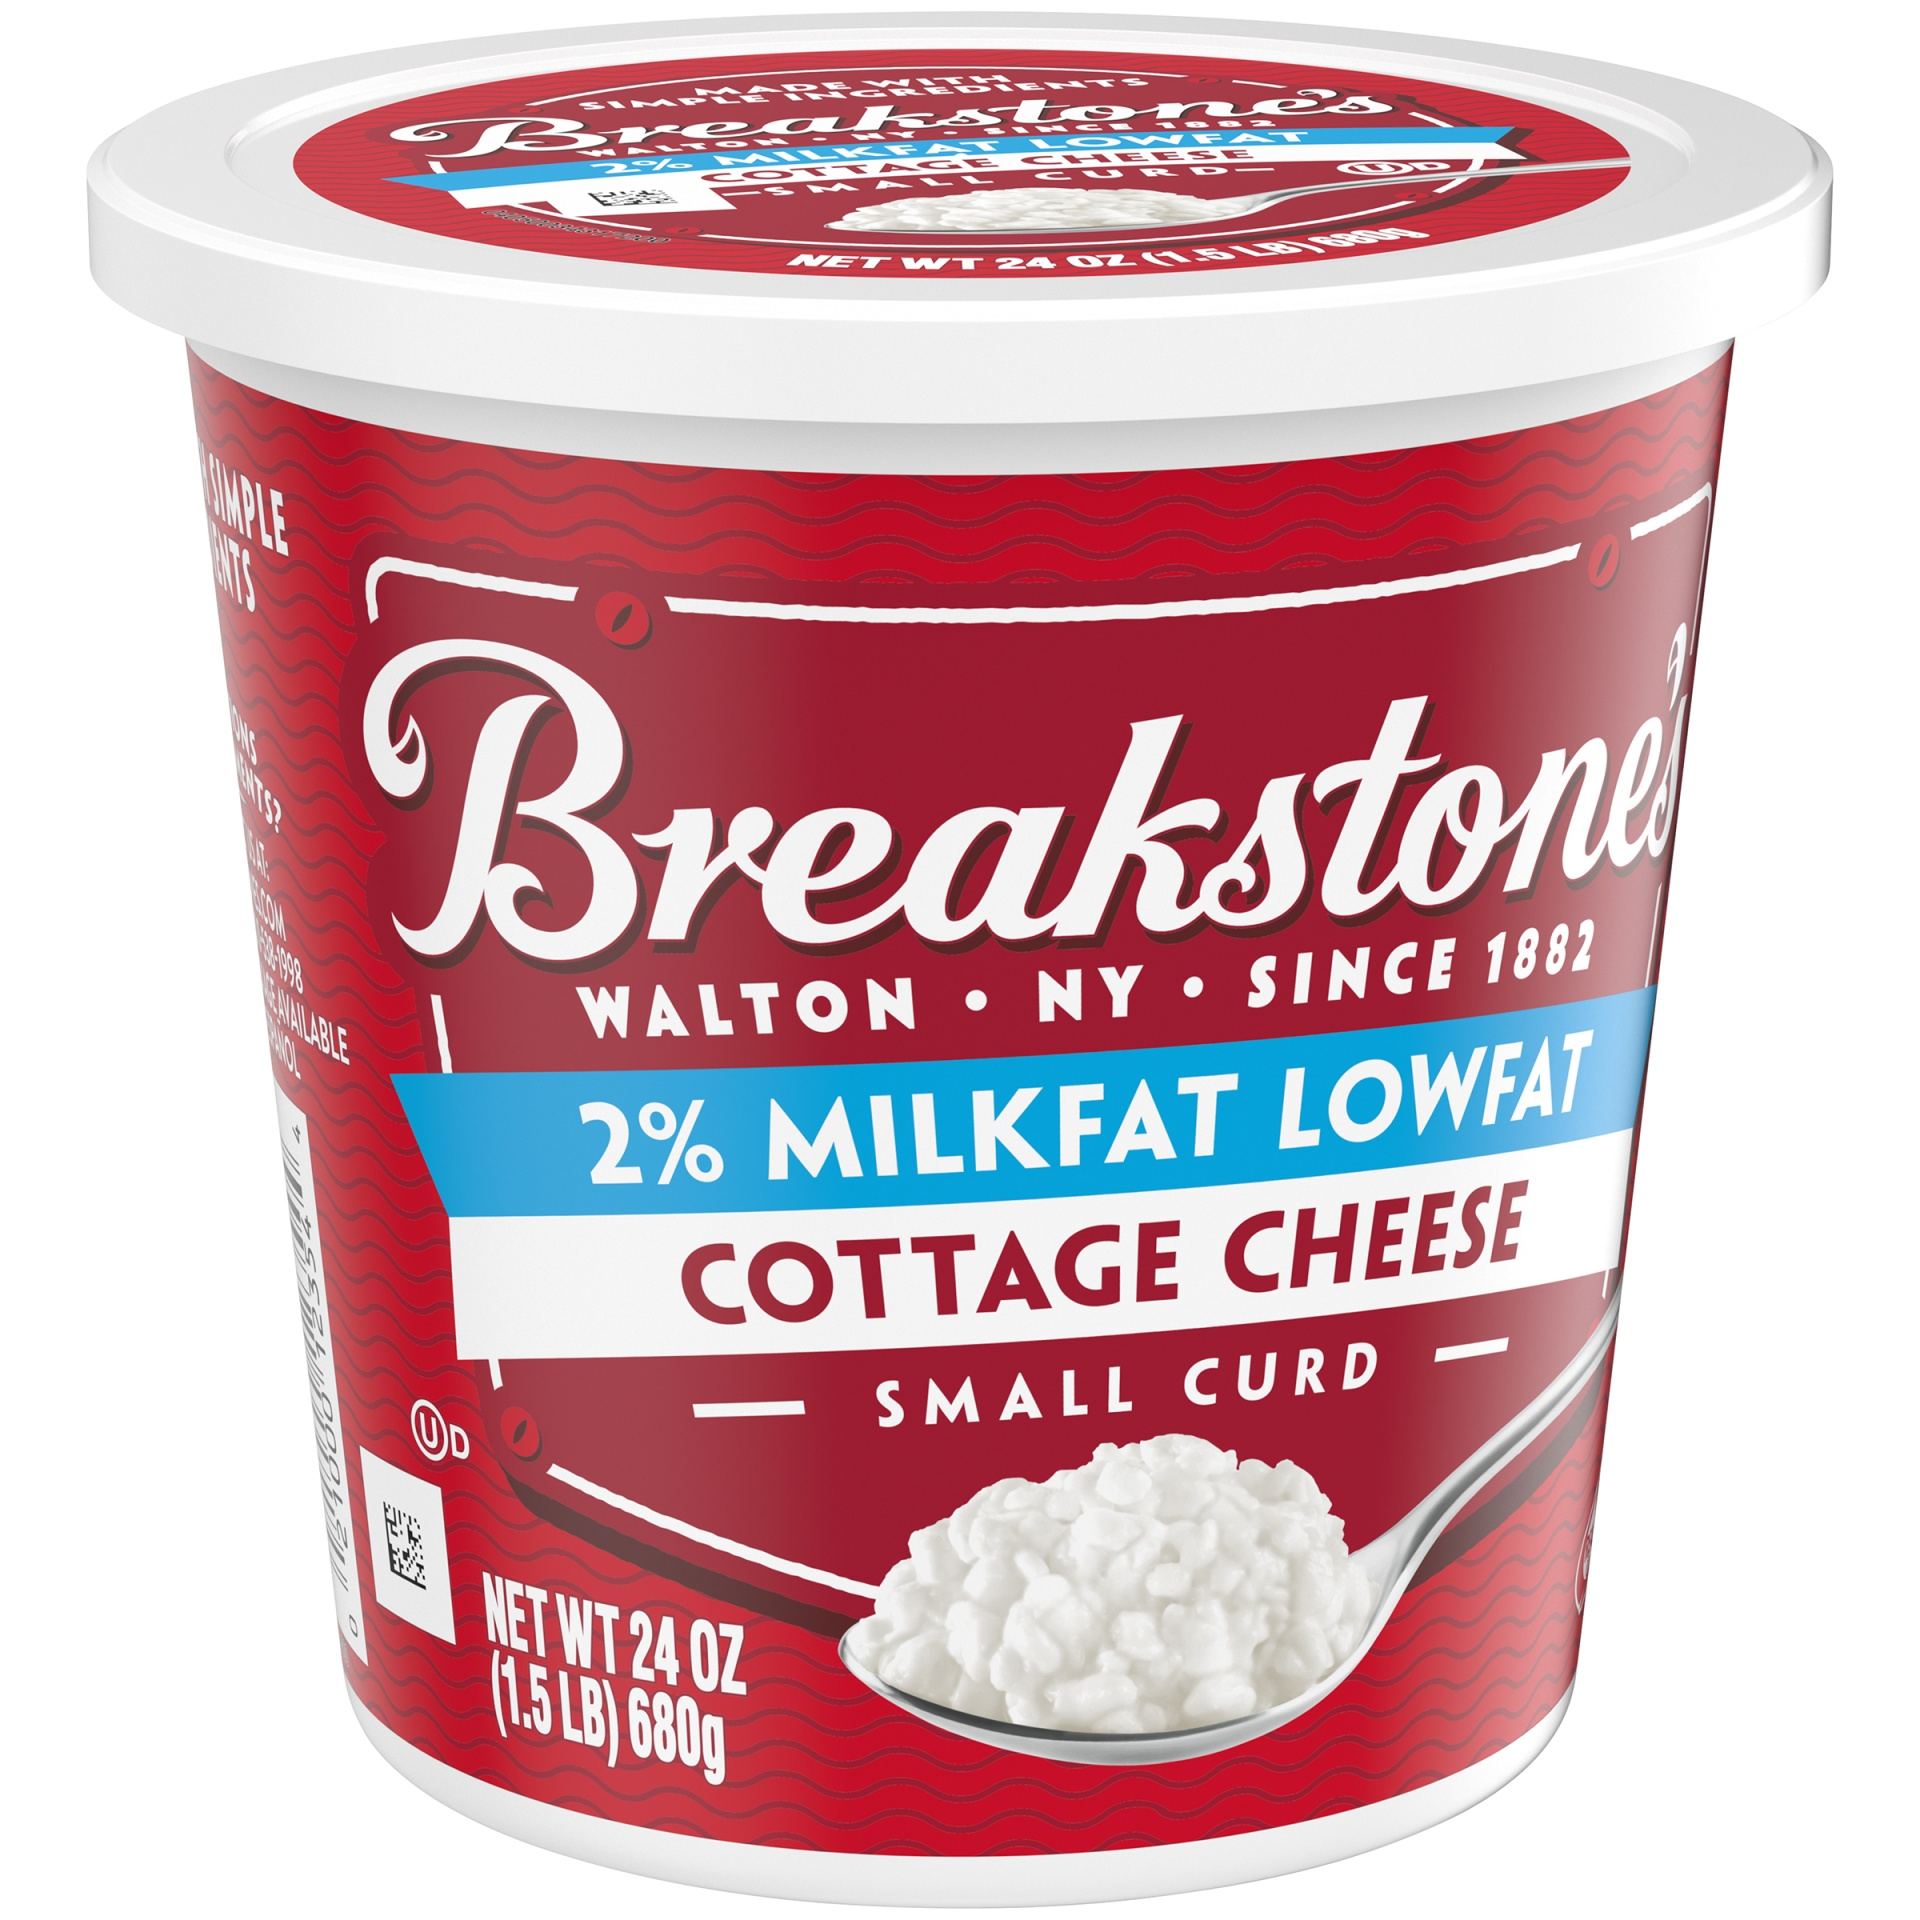 slide 2 of 6, Breakstone's Small Curd 2% Milkfat Cottage Cheese,